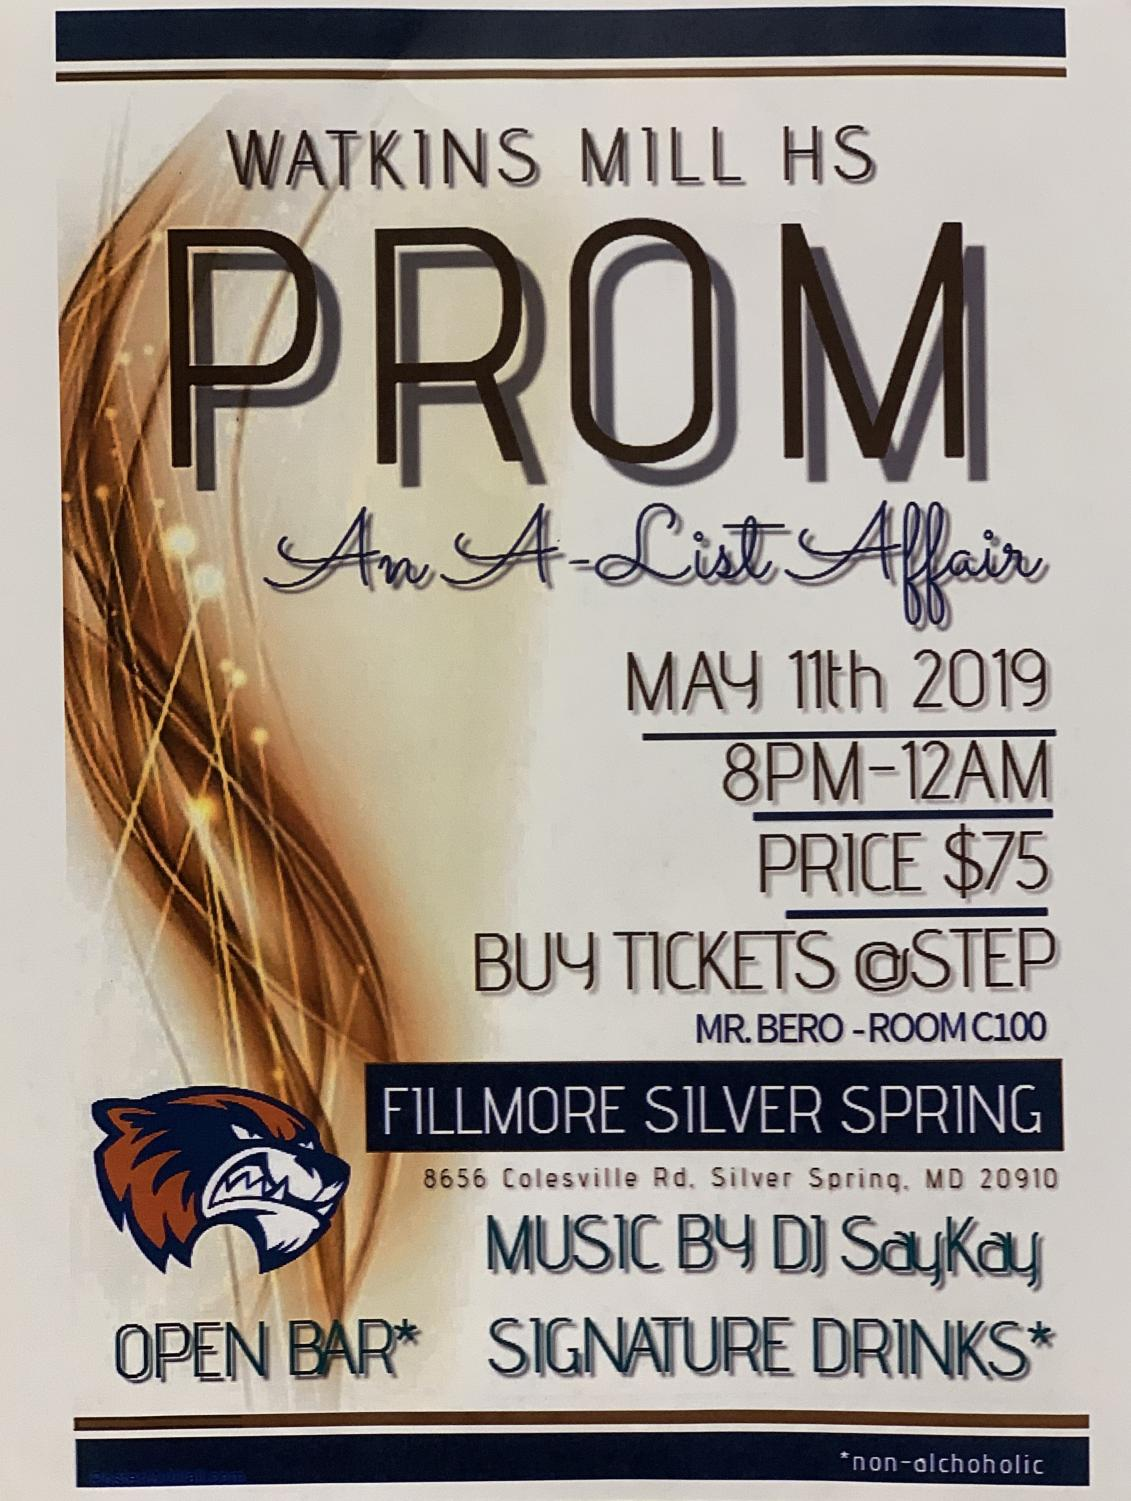 Watkins Mill's annual prom will take place Saturday night at the Silver Spring Fillmore with the theme,